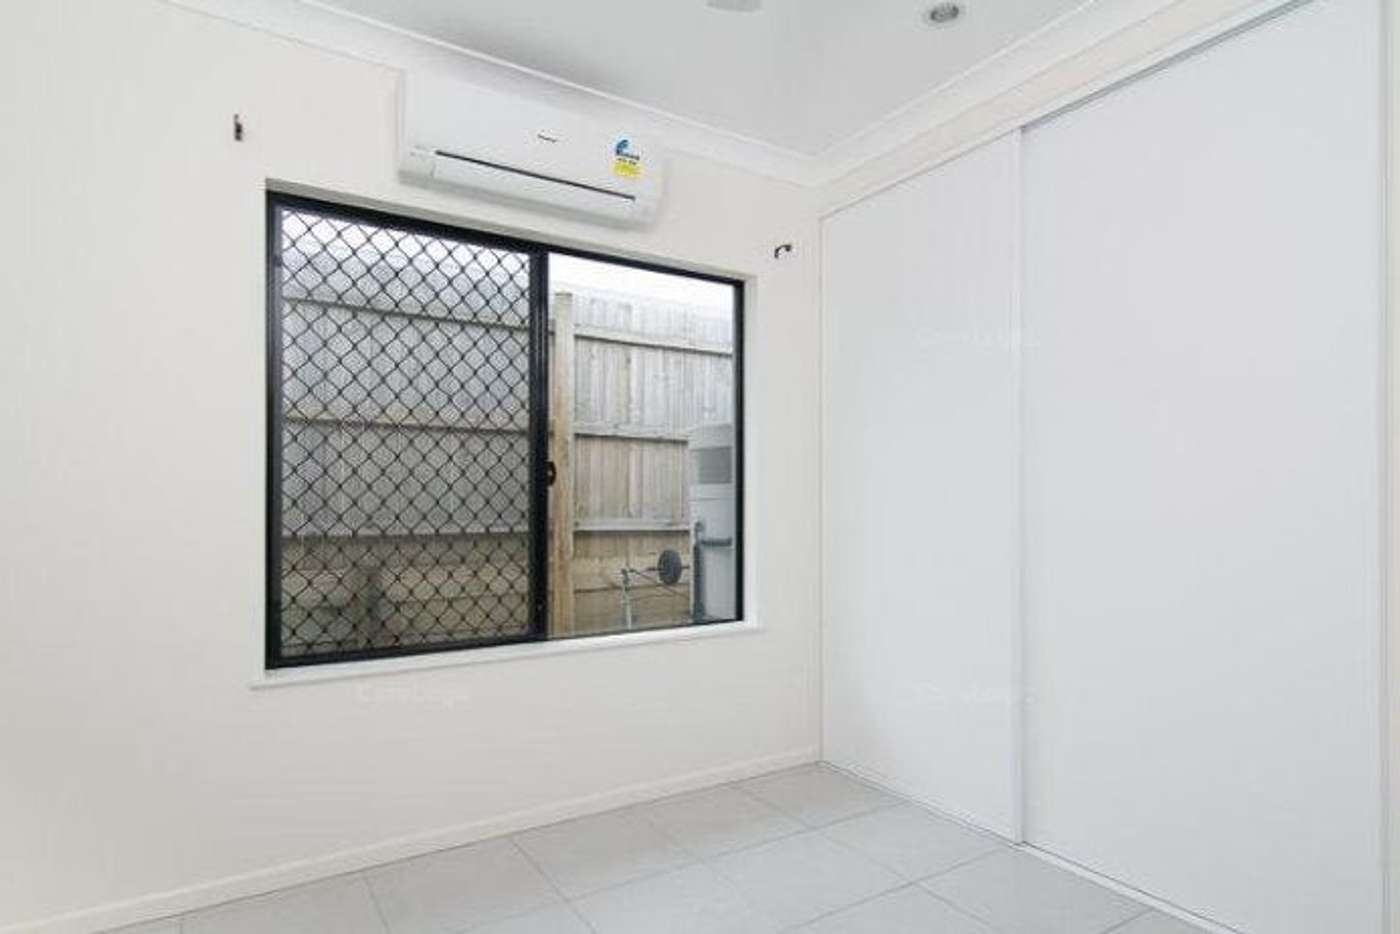 Seventh view of Homely house listing, 36 Newman Street, Gordonvale QLD 4865